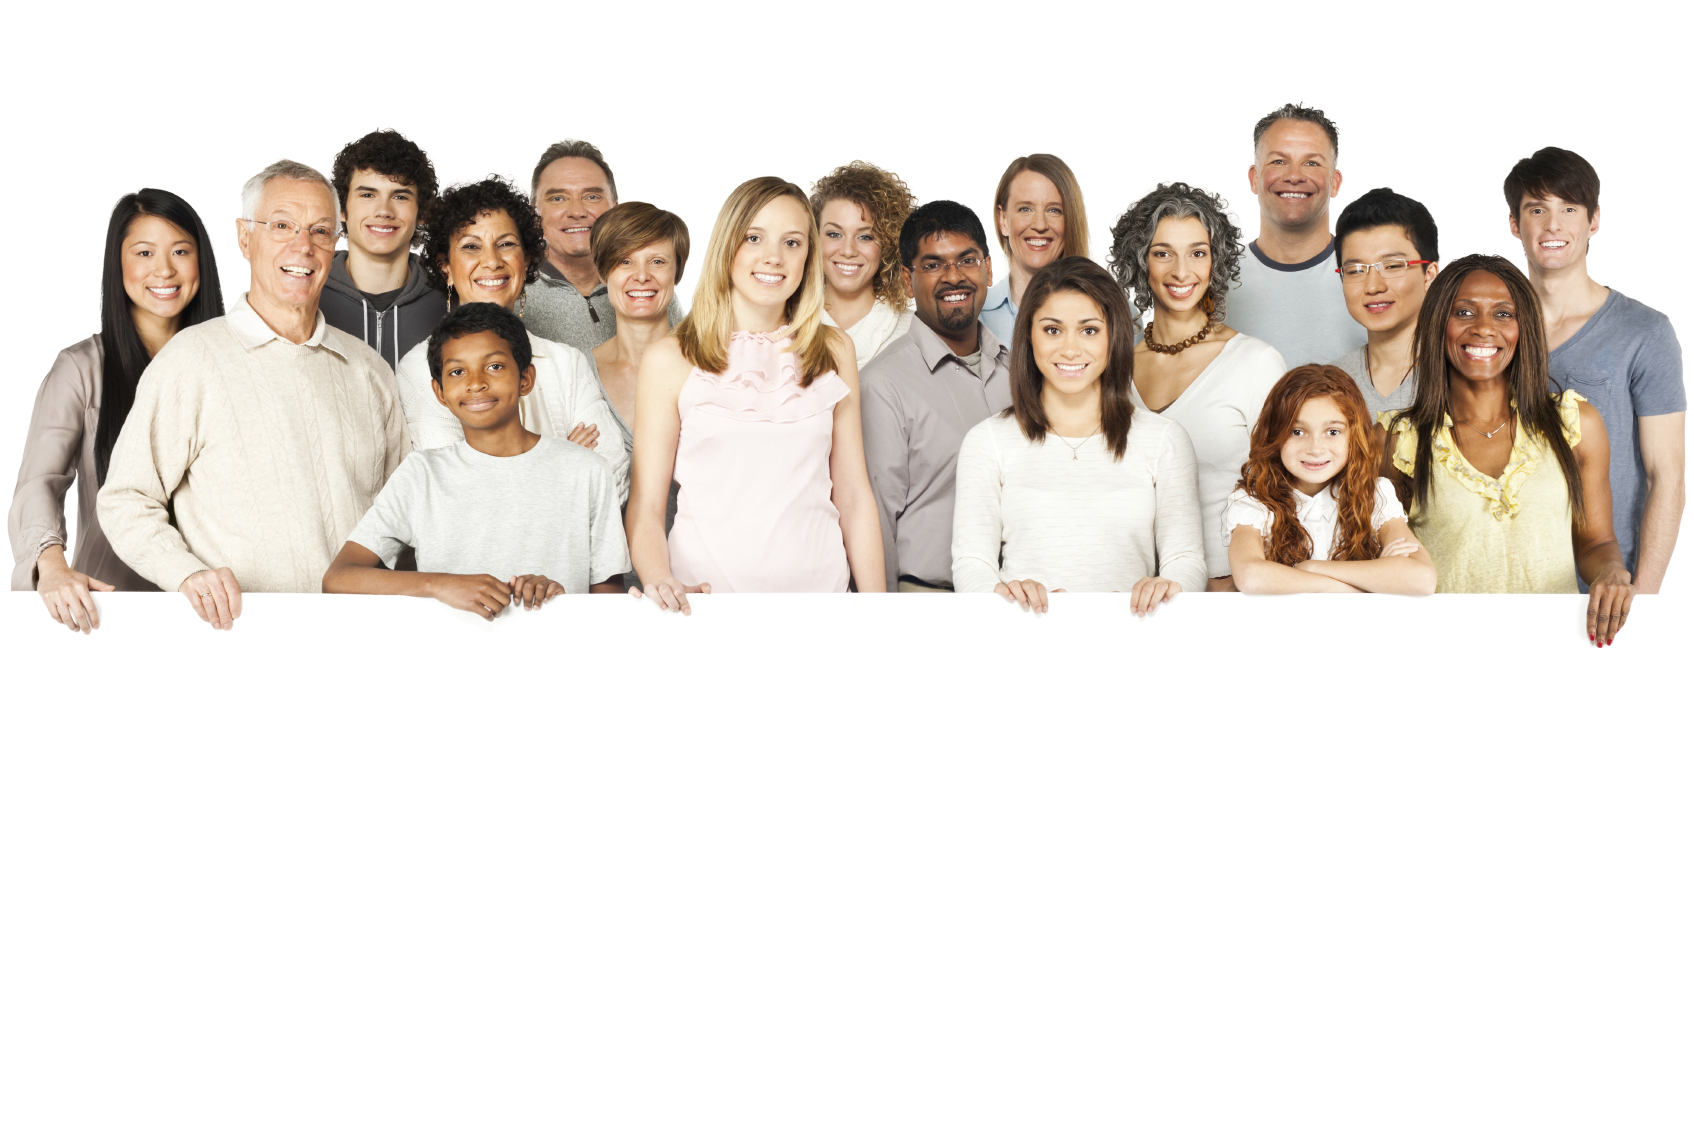 The Advantages of Diverse Ages in the Workplace